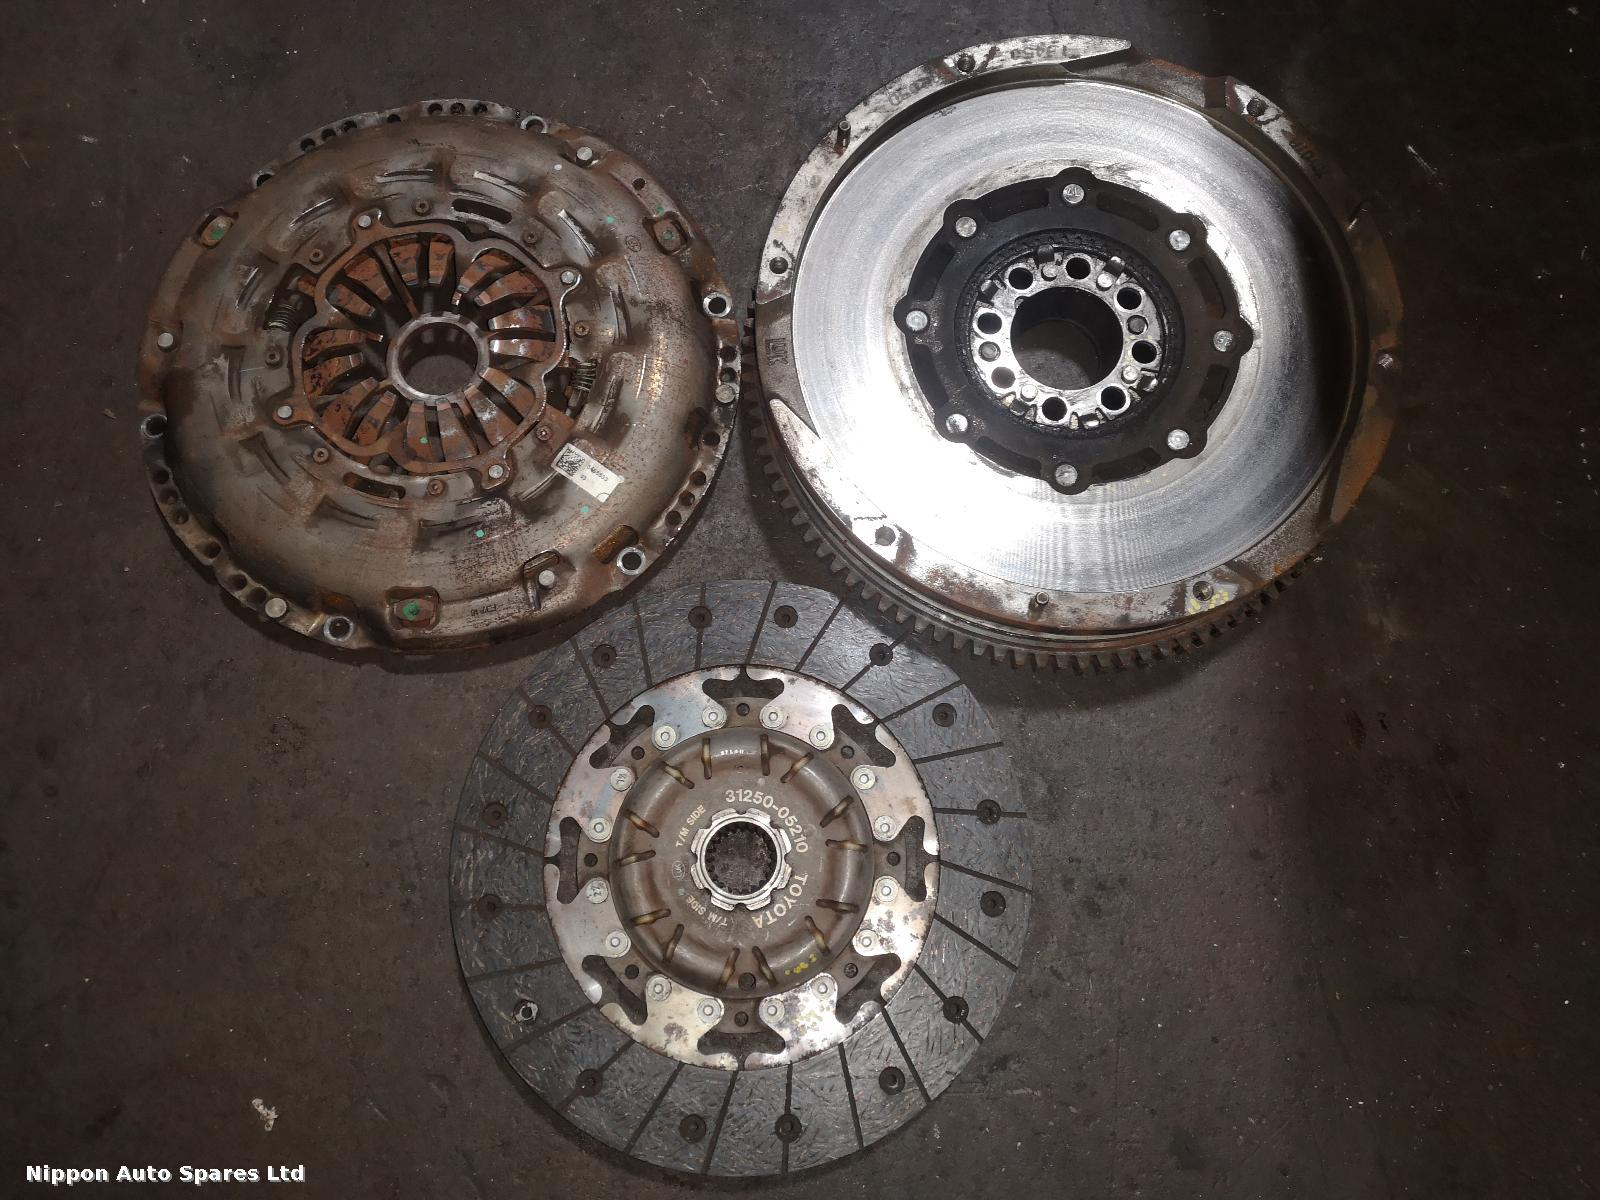 Toyota AVENSIS Flywheel Flexplate 2.0 DIESEL WITH CLUTCH : 54002